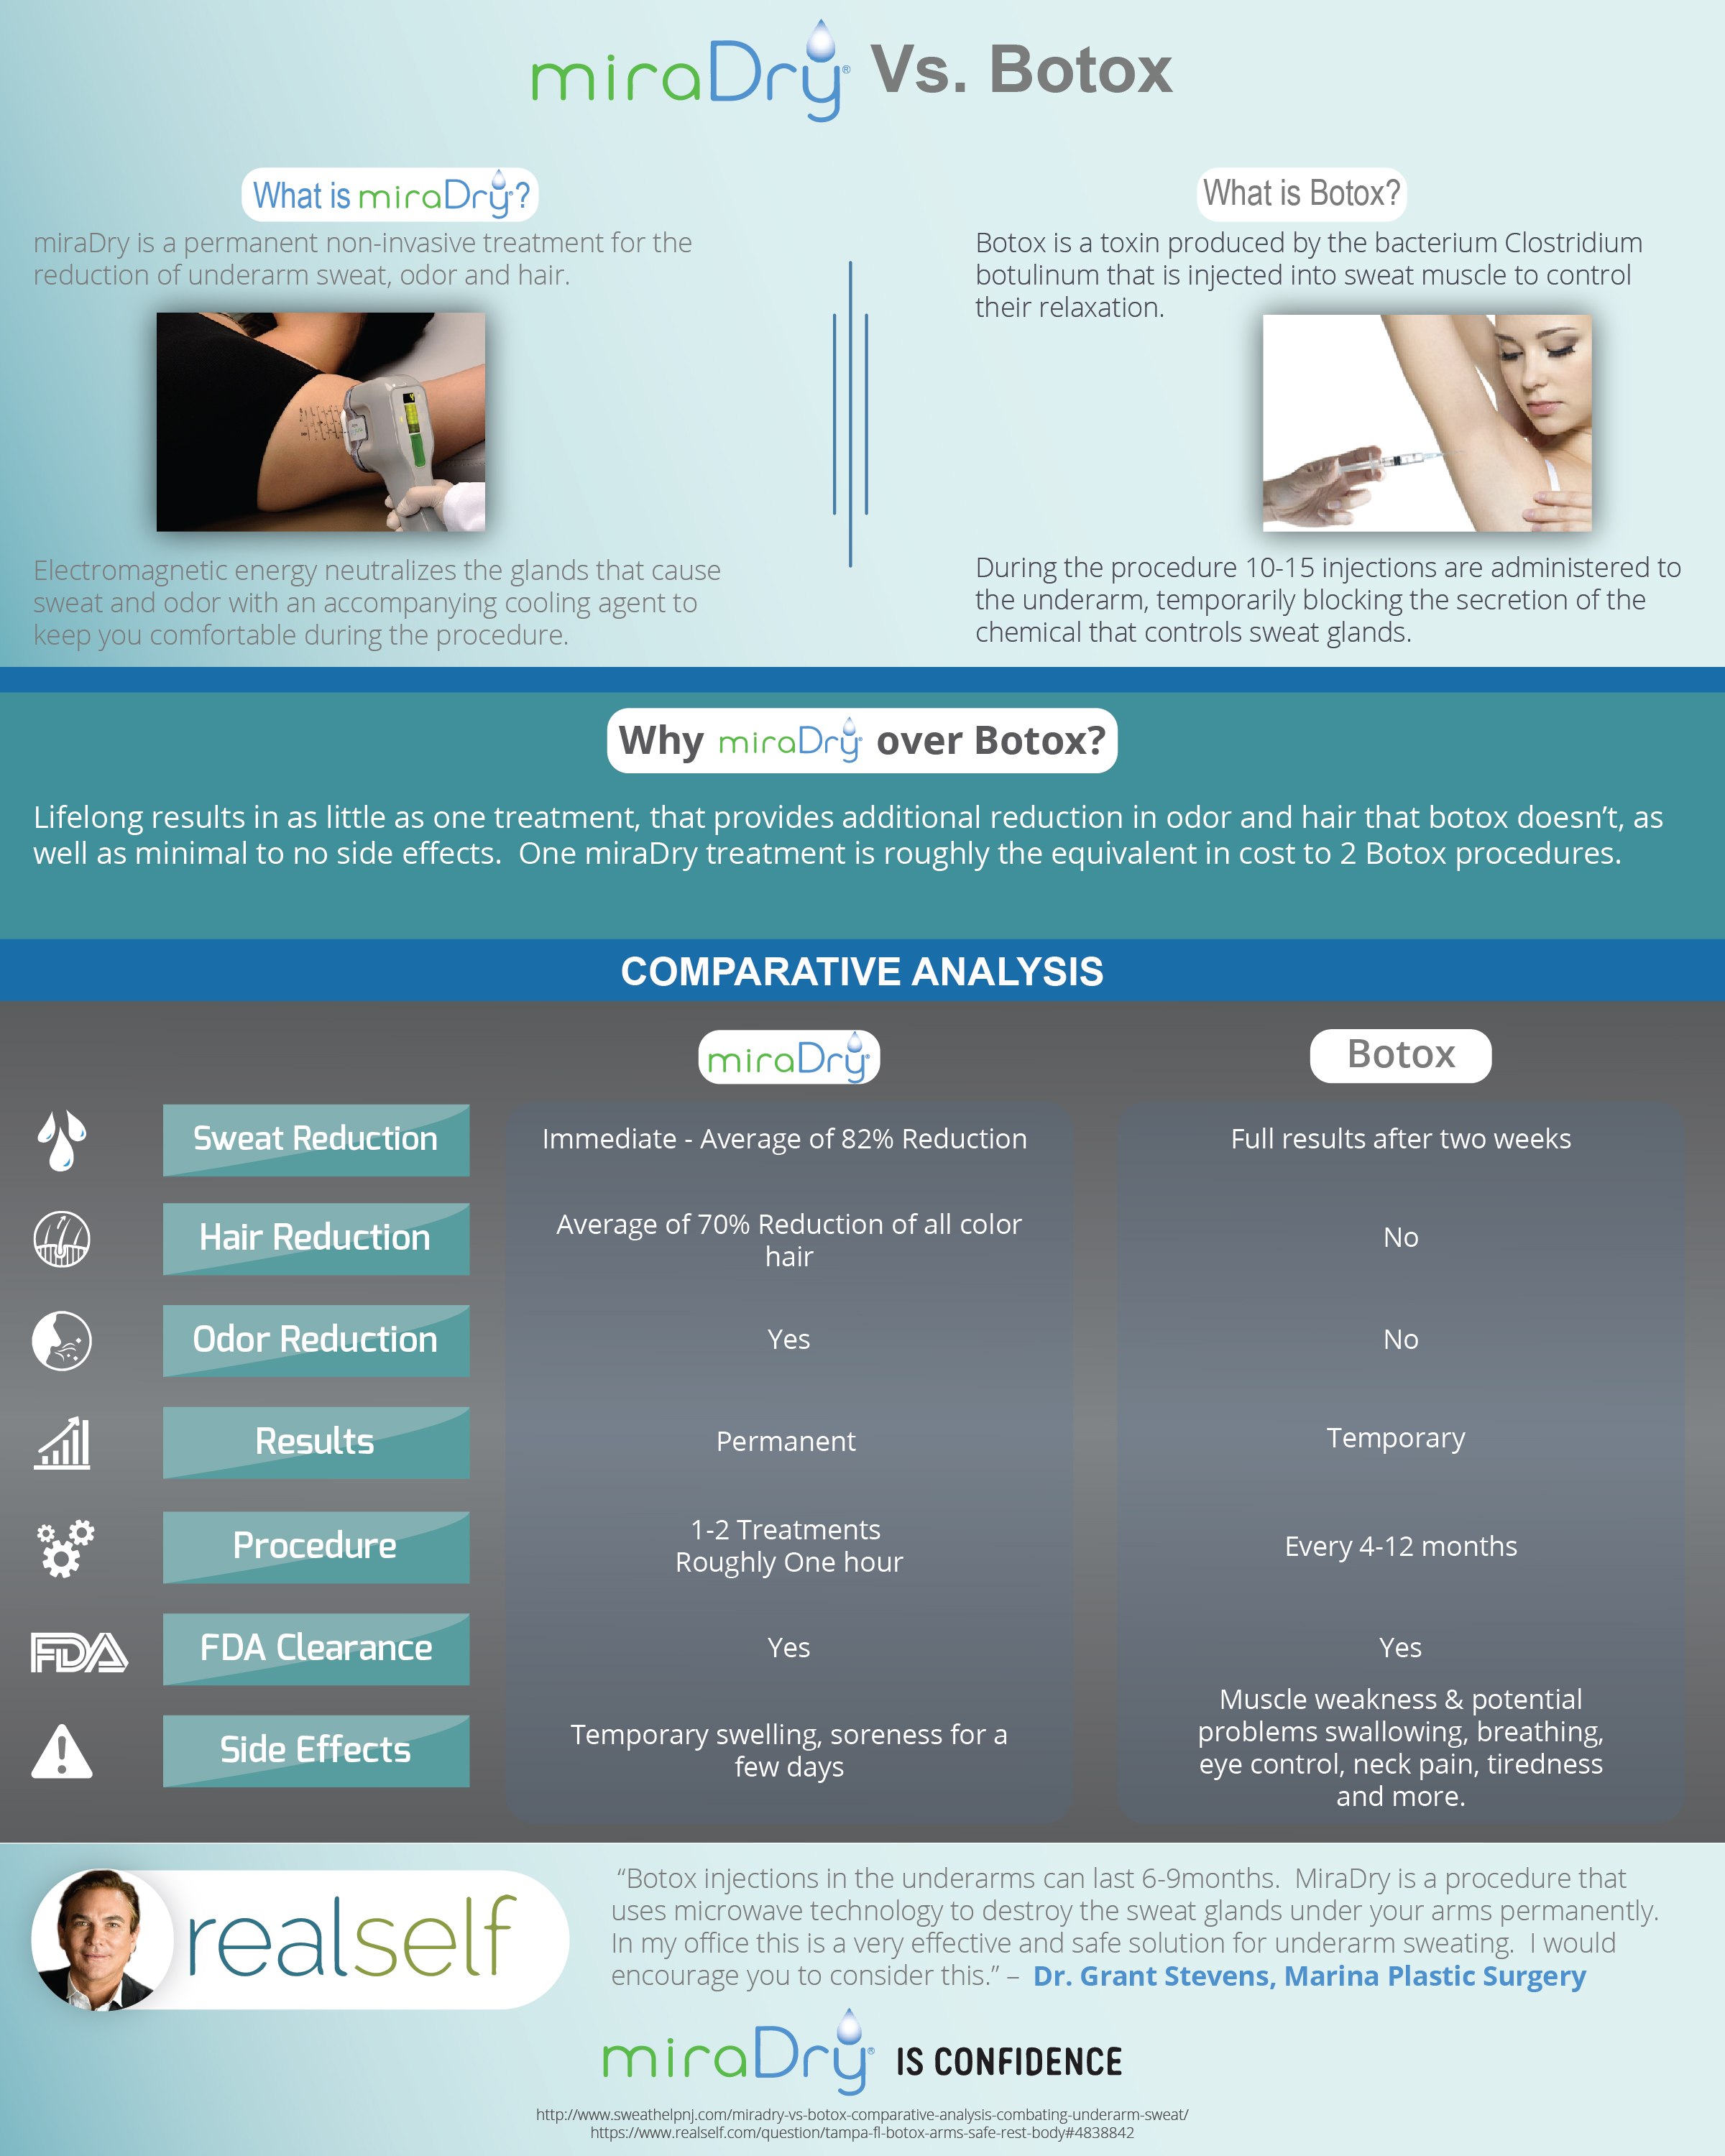 miraDry vs. Botox comparison infographic